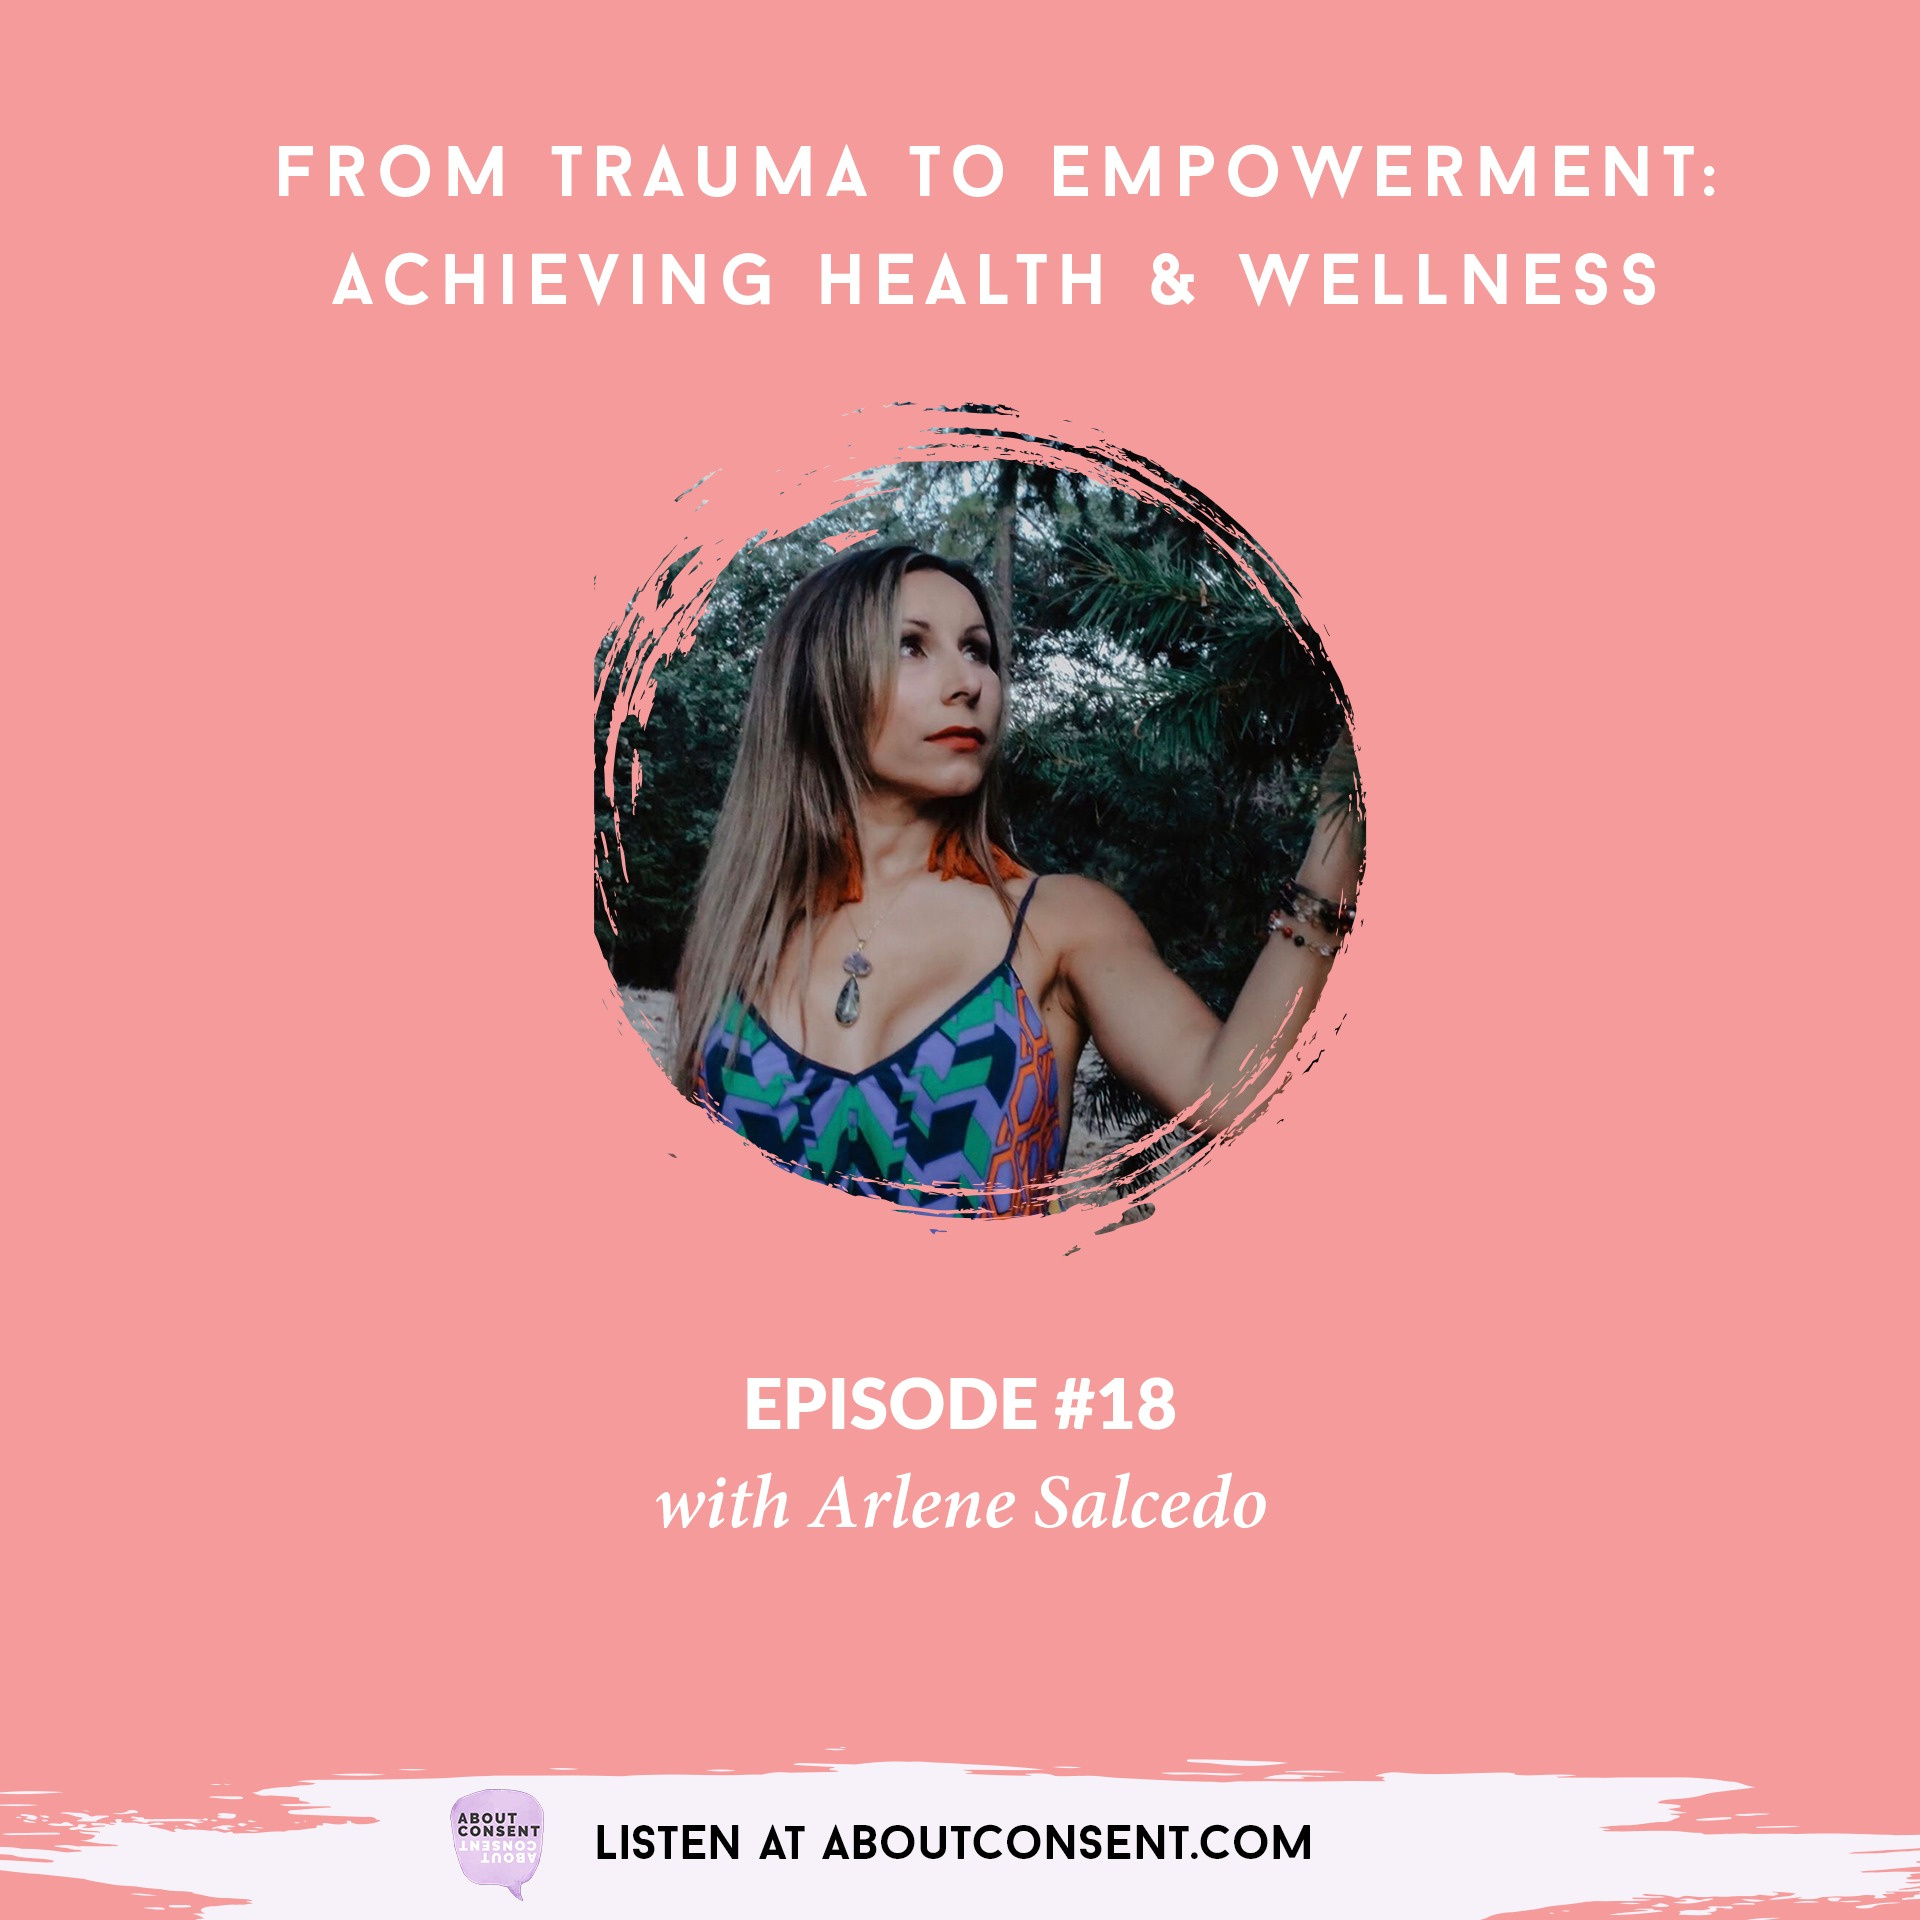 EP 18: From Trauma to Empowerment: Achieving Health & Wellness